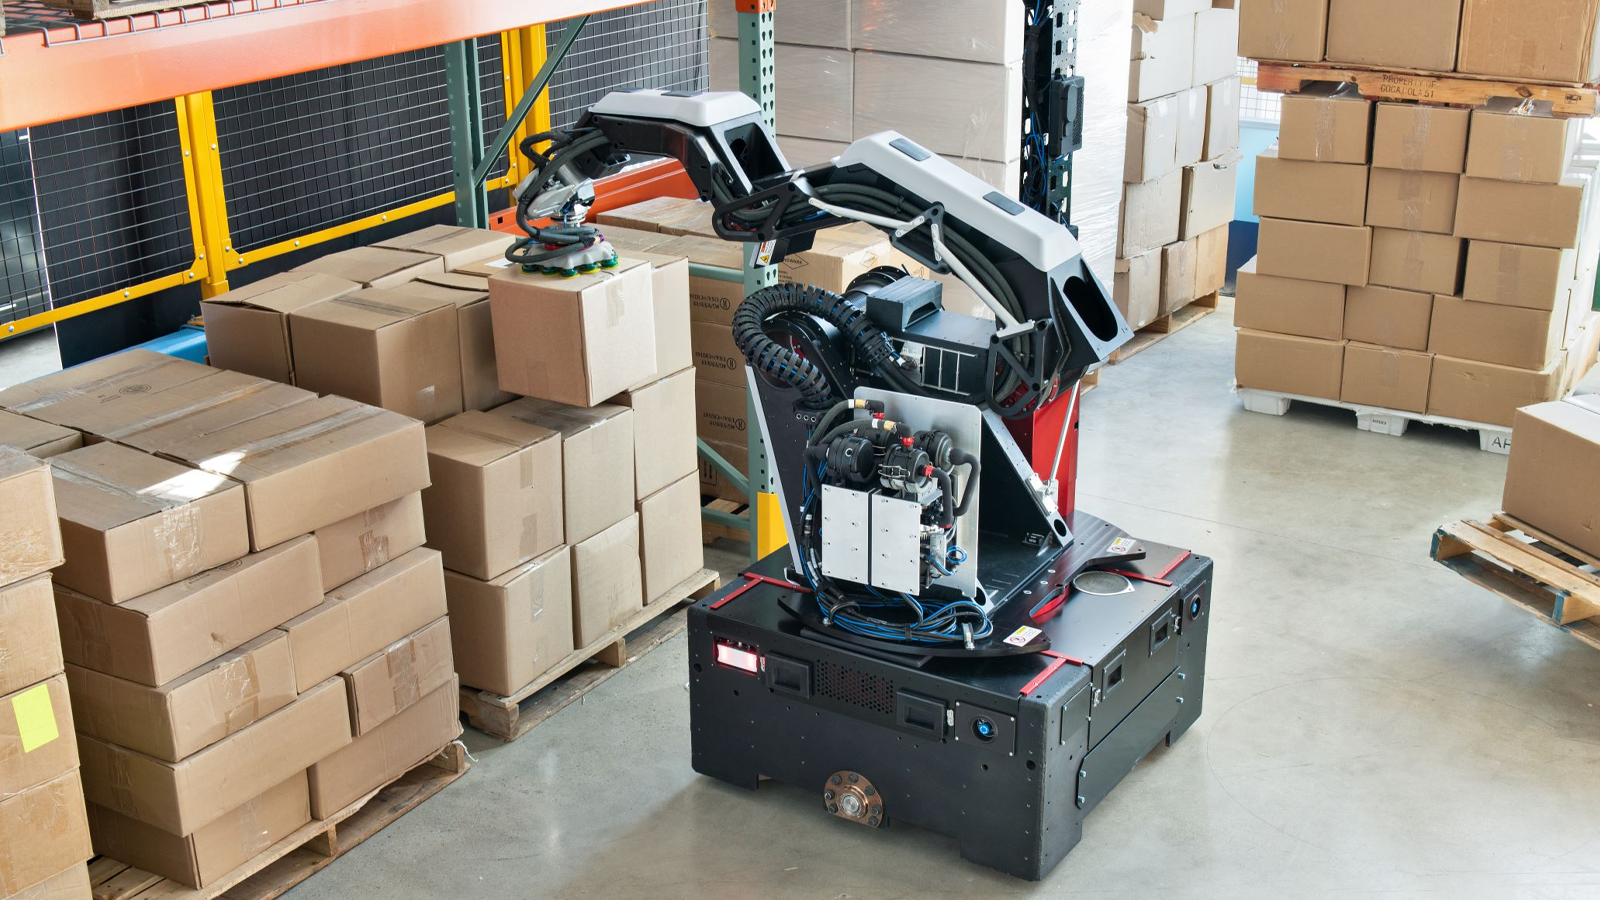 A photo of the Boston Dynamics Stretch robot in a warehouse.